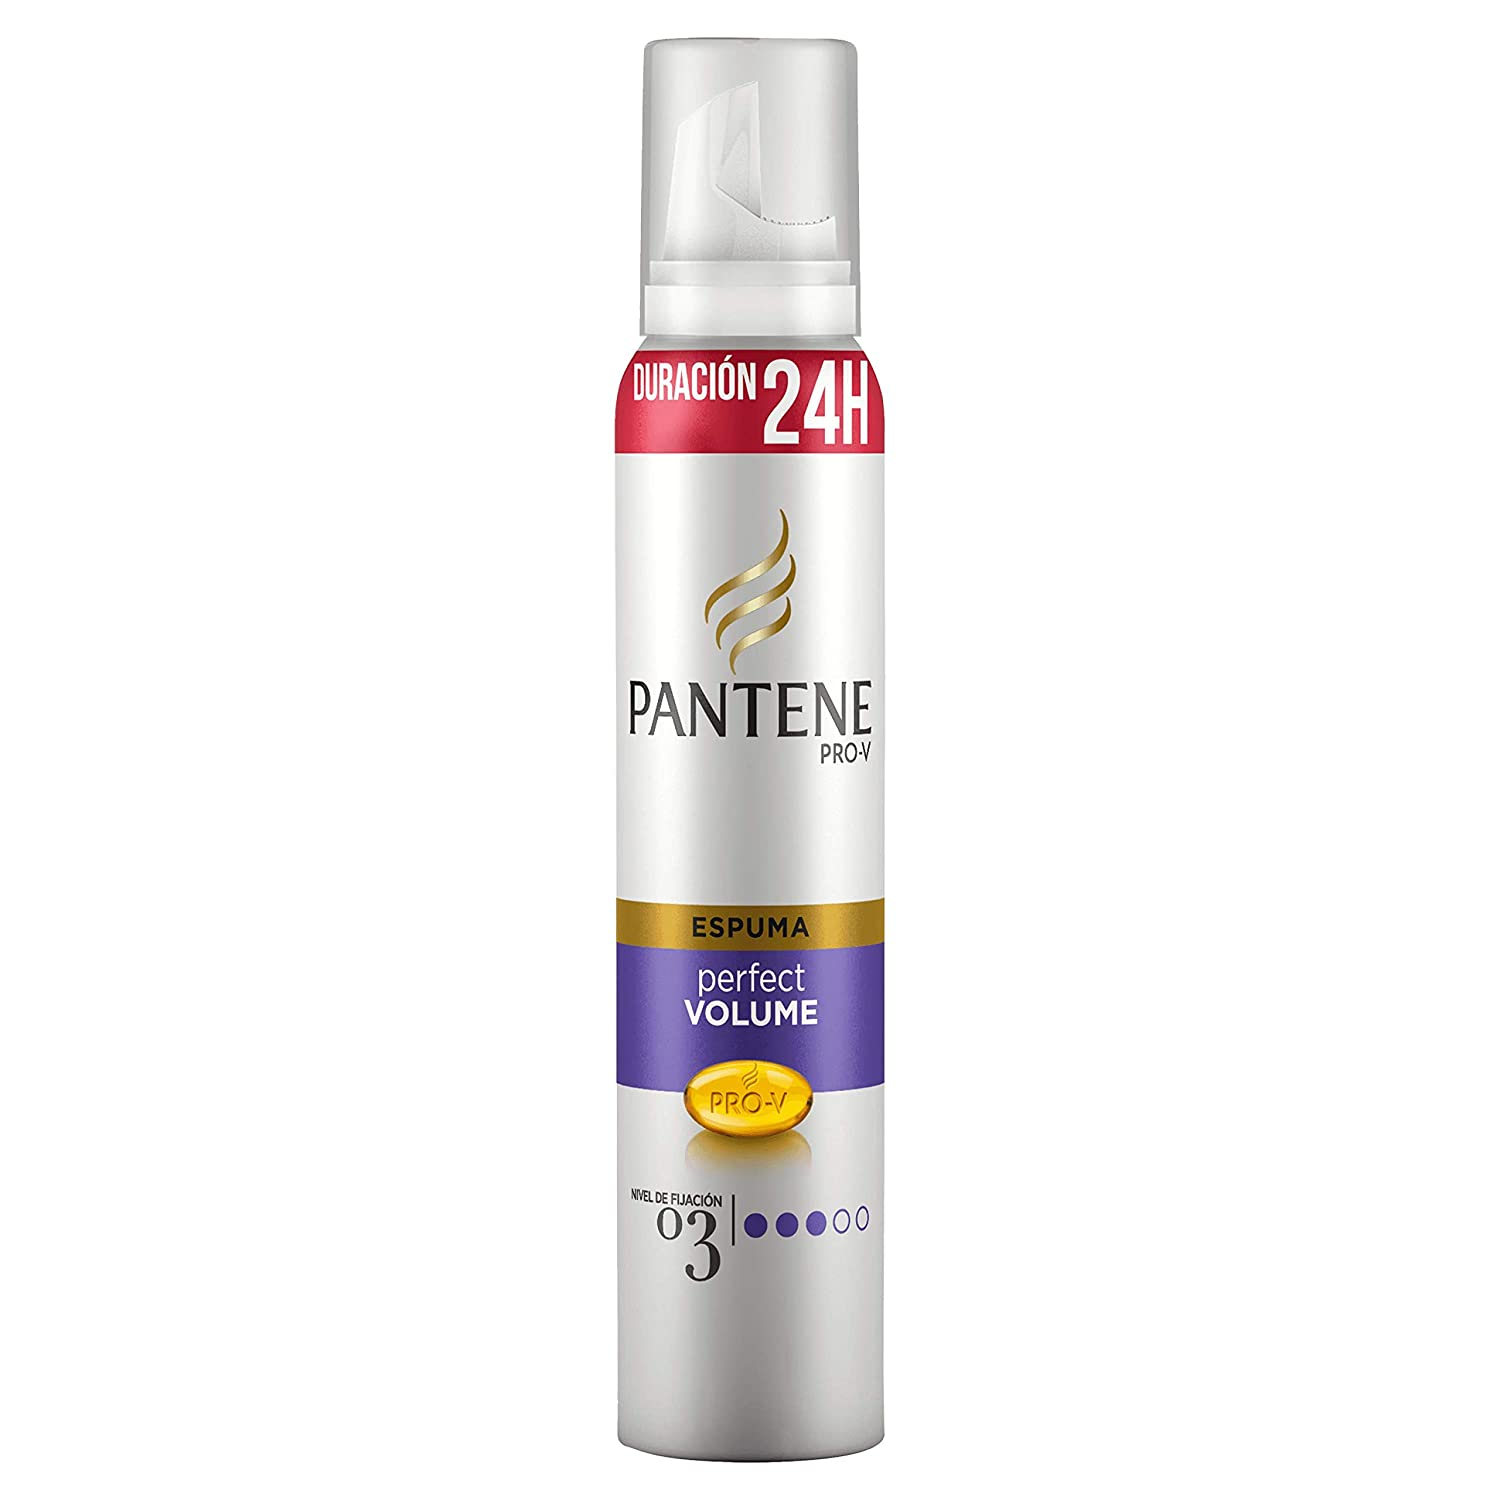 Pantene Pro-V Espuma ligera Perfect Volume, nivel de fijación 3, 24 H de duración - 250 ml: Amazon.es